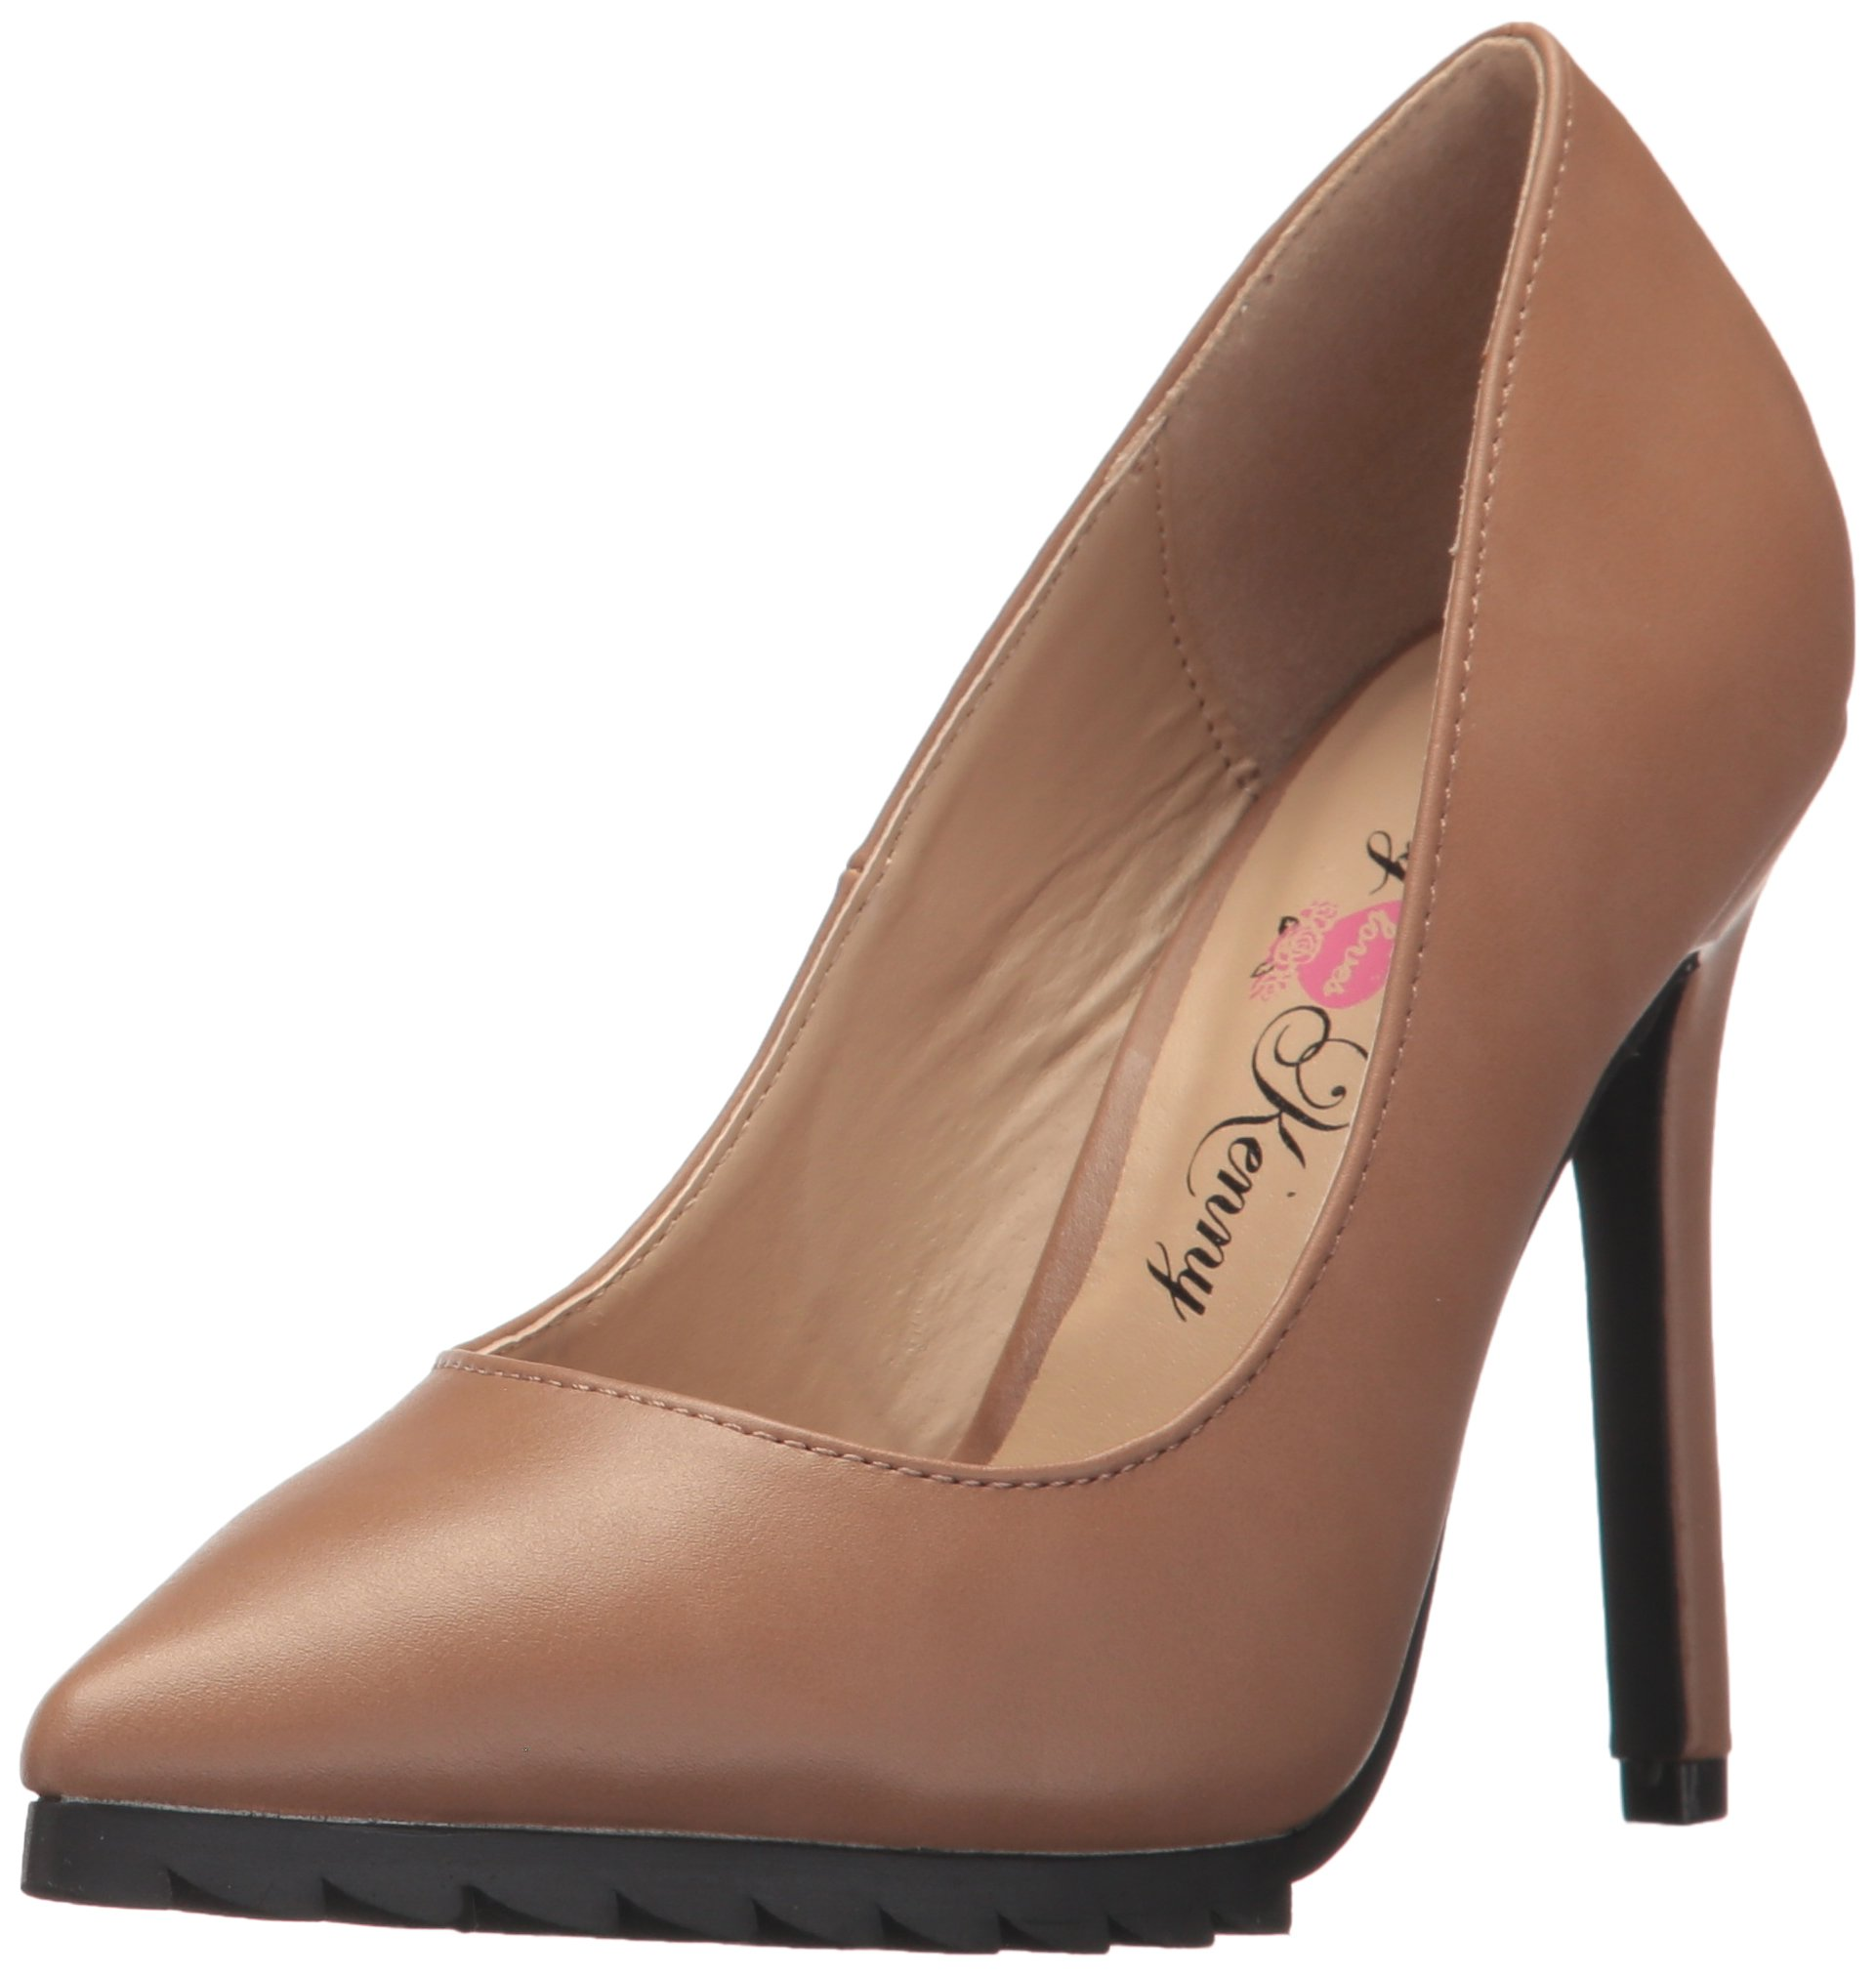 Penny Loves Kenny Women's Opus/Tread Dress Pump, Nude, 13 W US